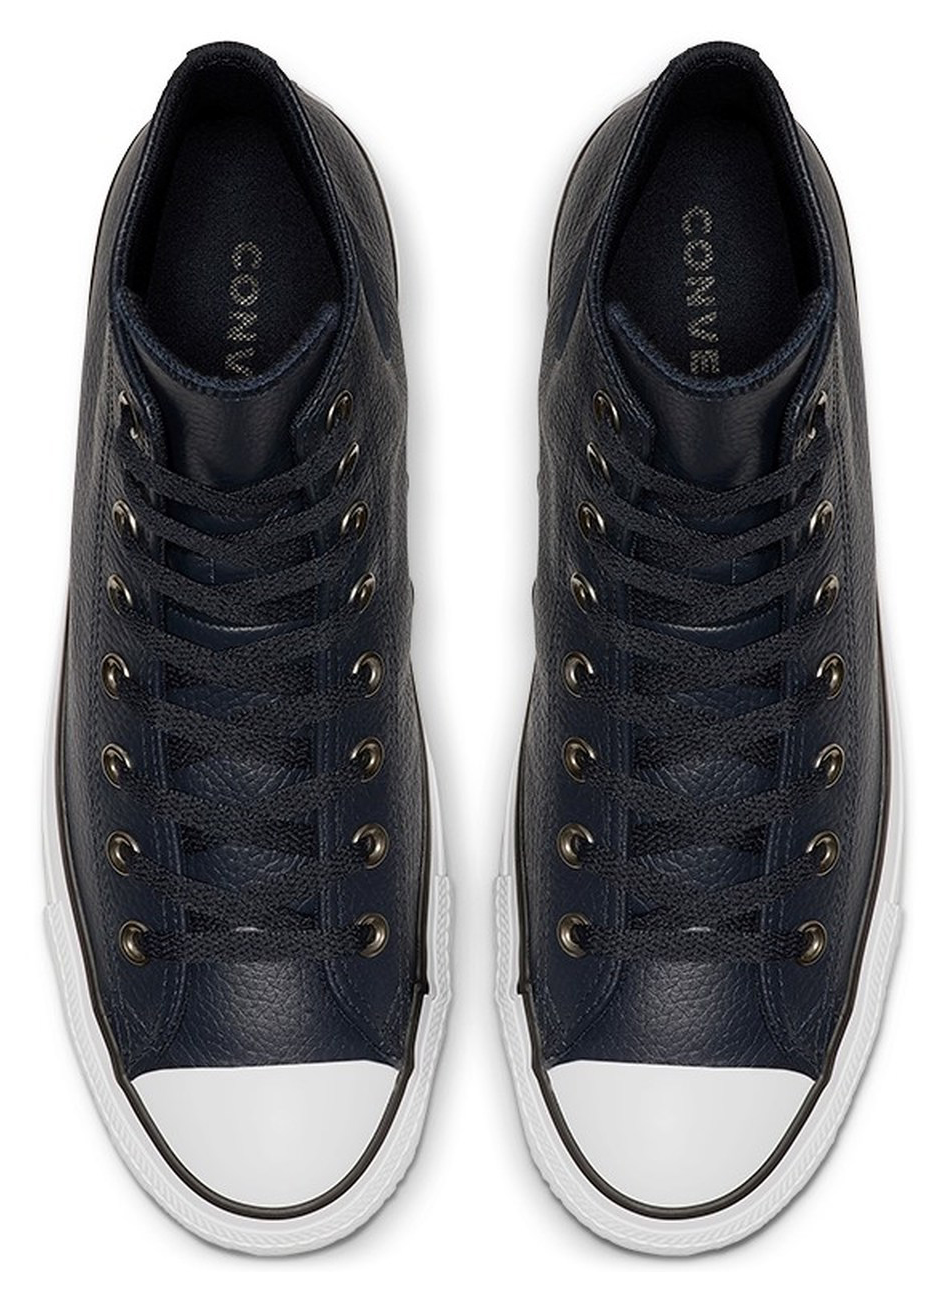 Converse black leather sneakers Chuck Taylor All Star